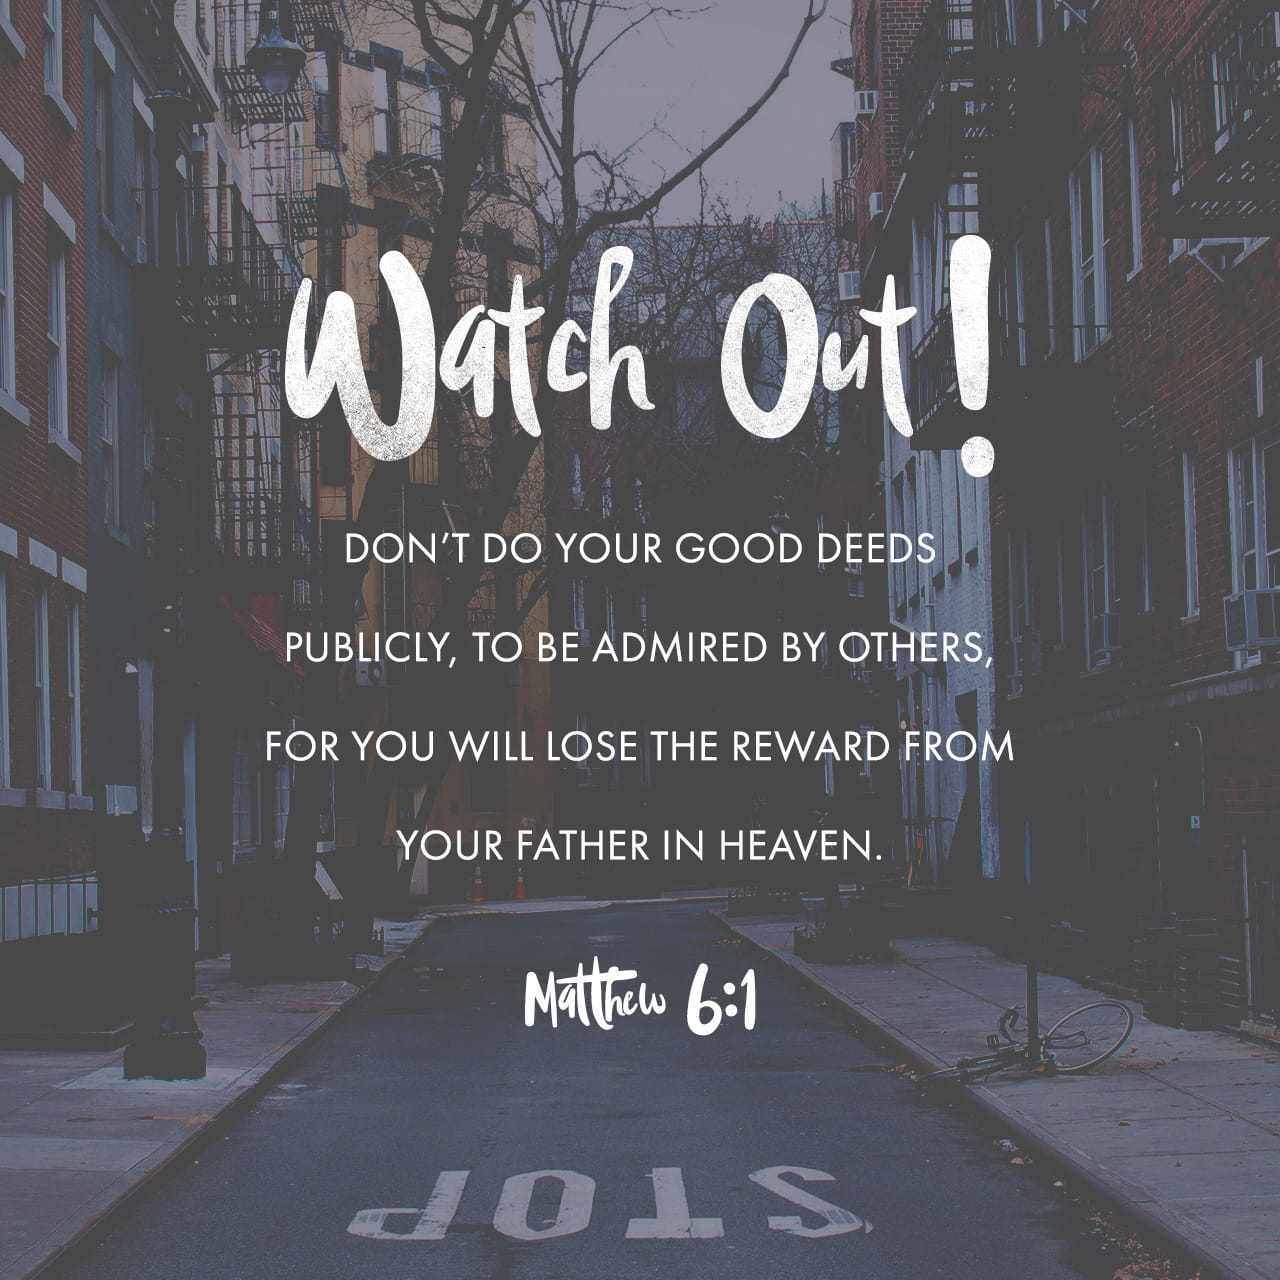 "Matthew 6:1 ""Be careful not to practice your righteousness in front of others to be seen by them. If you do, you will have no reward from your Father in heaven."